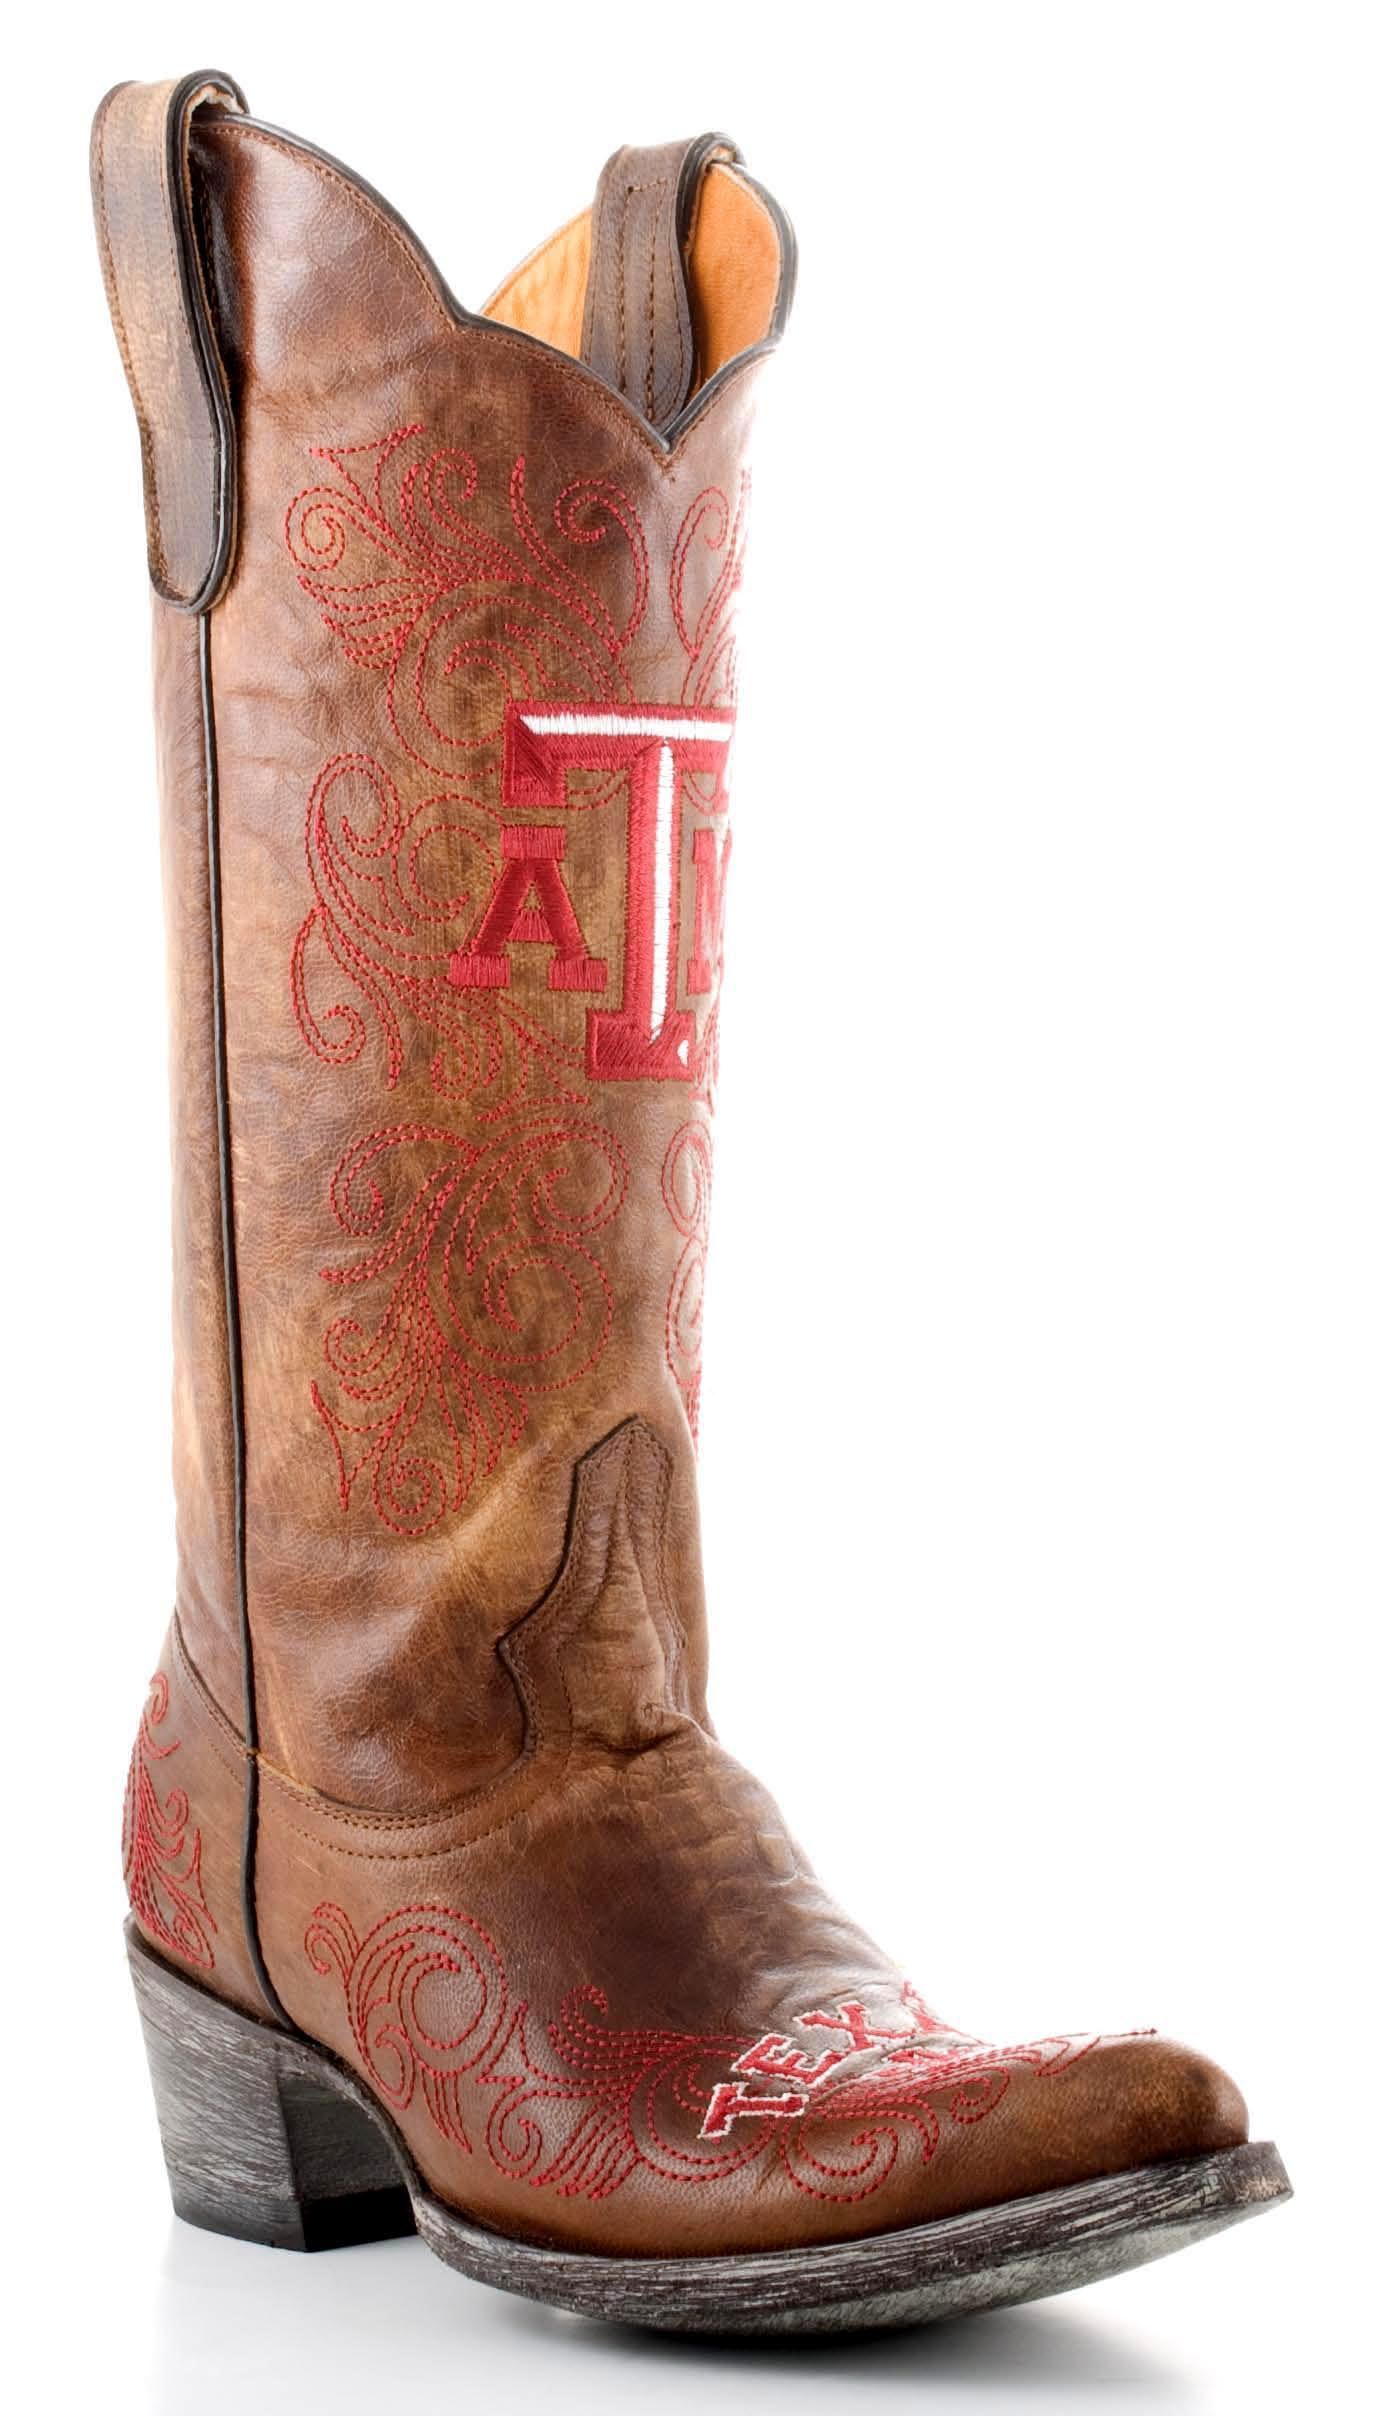 3ed530ab7dd For my sister...Womens Aggies Boots. Love these. So cool. Saw them ...